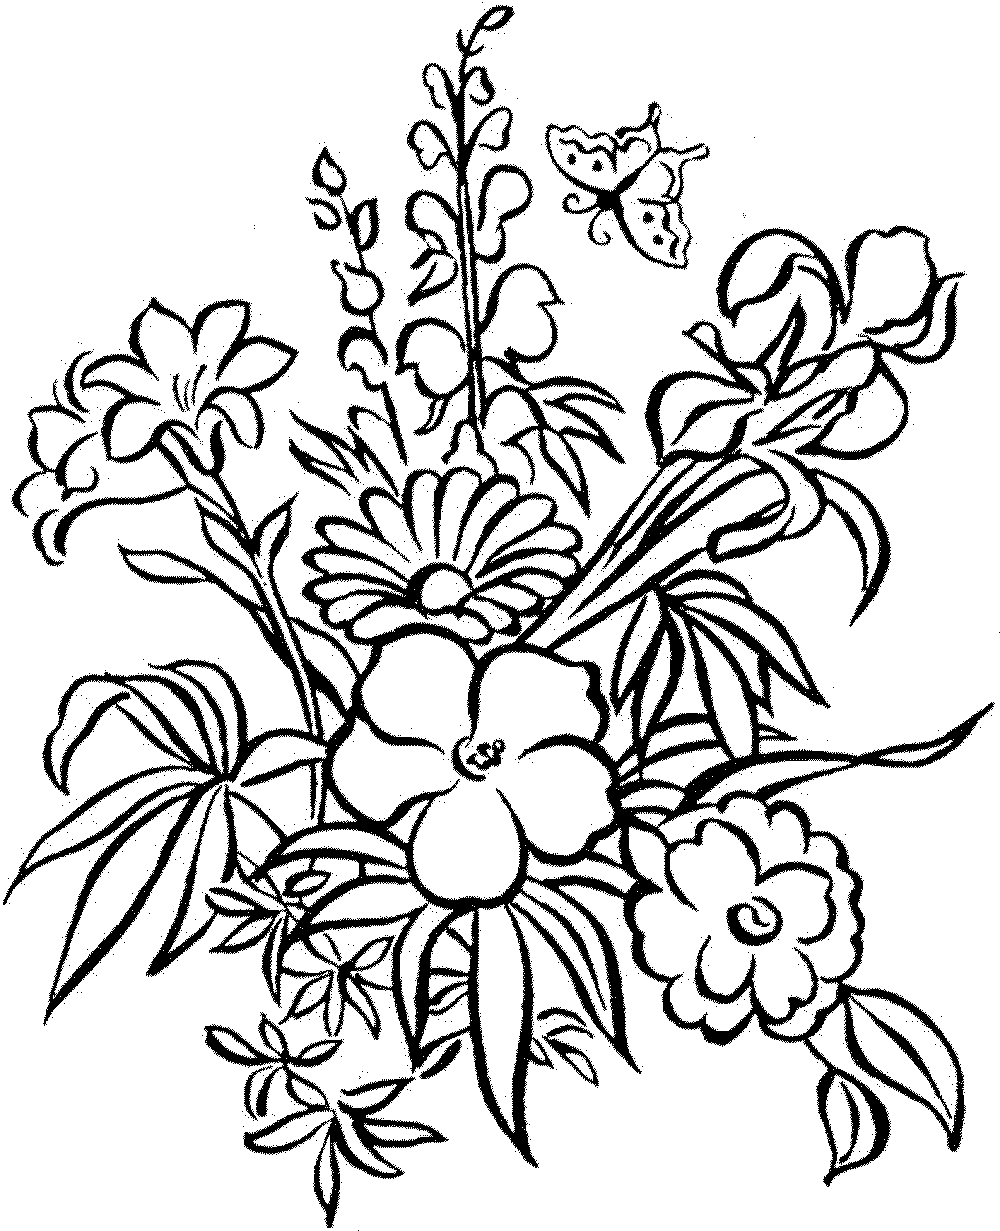 printable coloring pages plants detailed flower coloring pages to download and print for free pages coloring printable plants